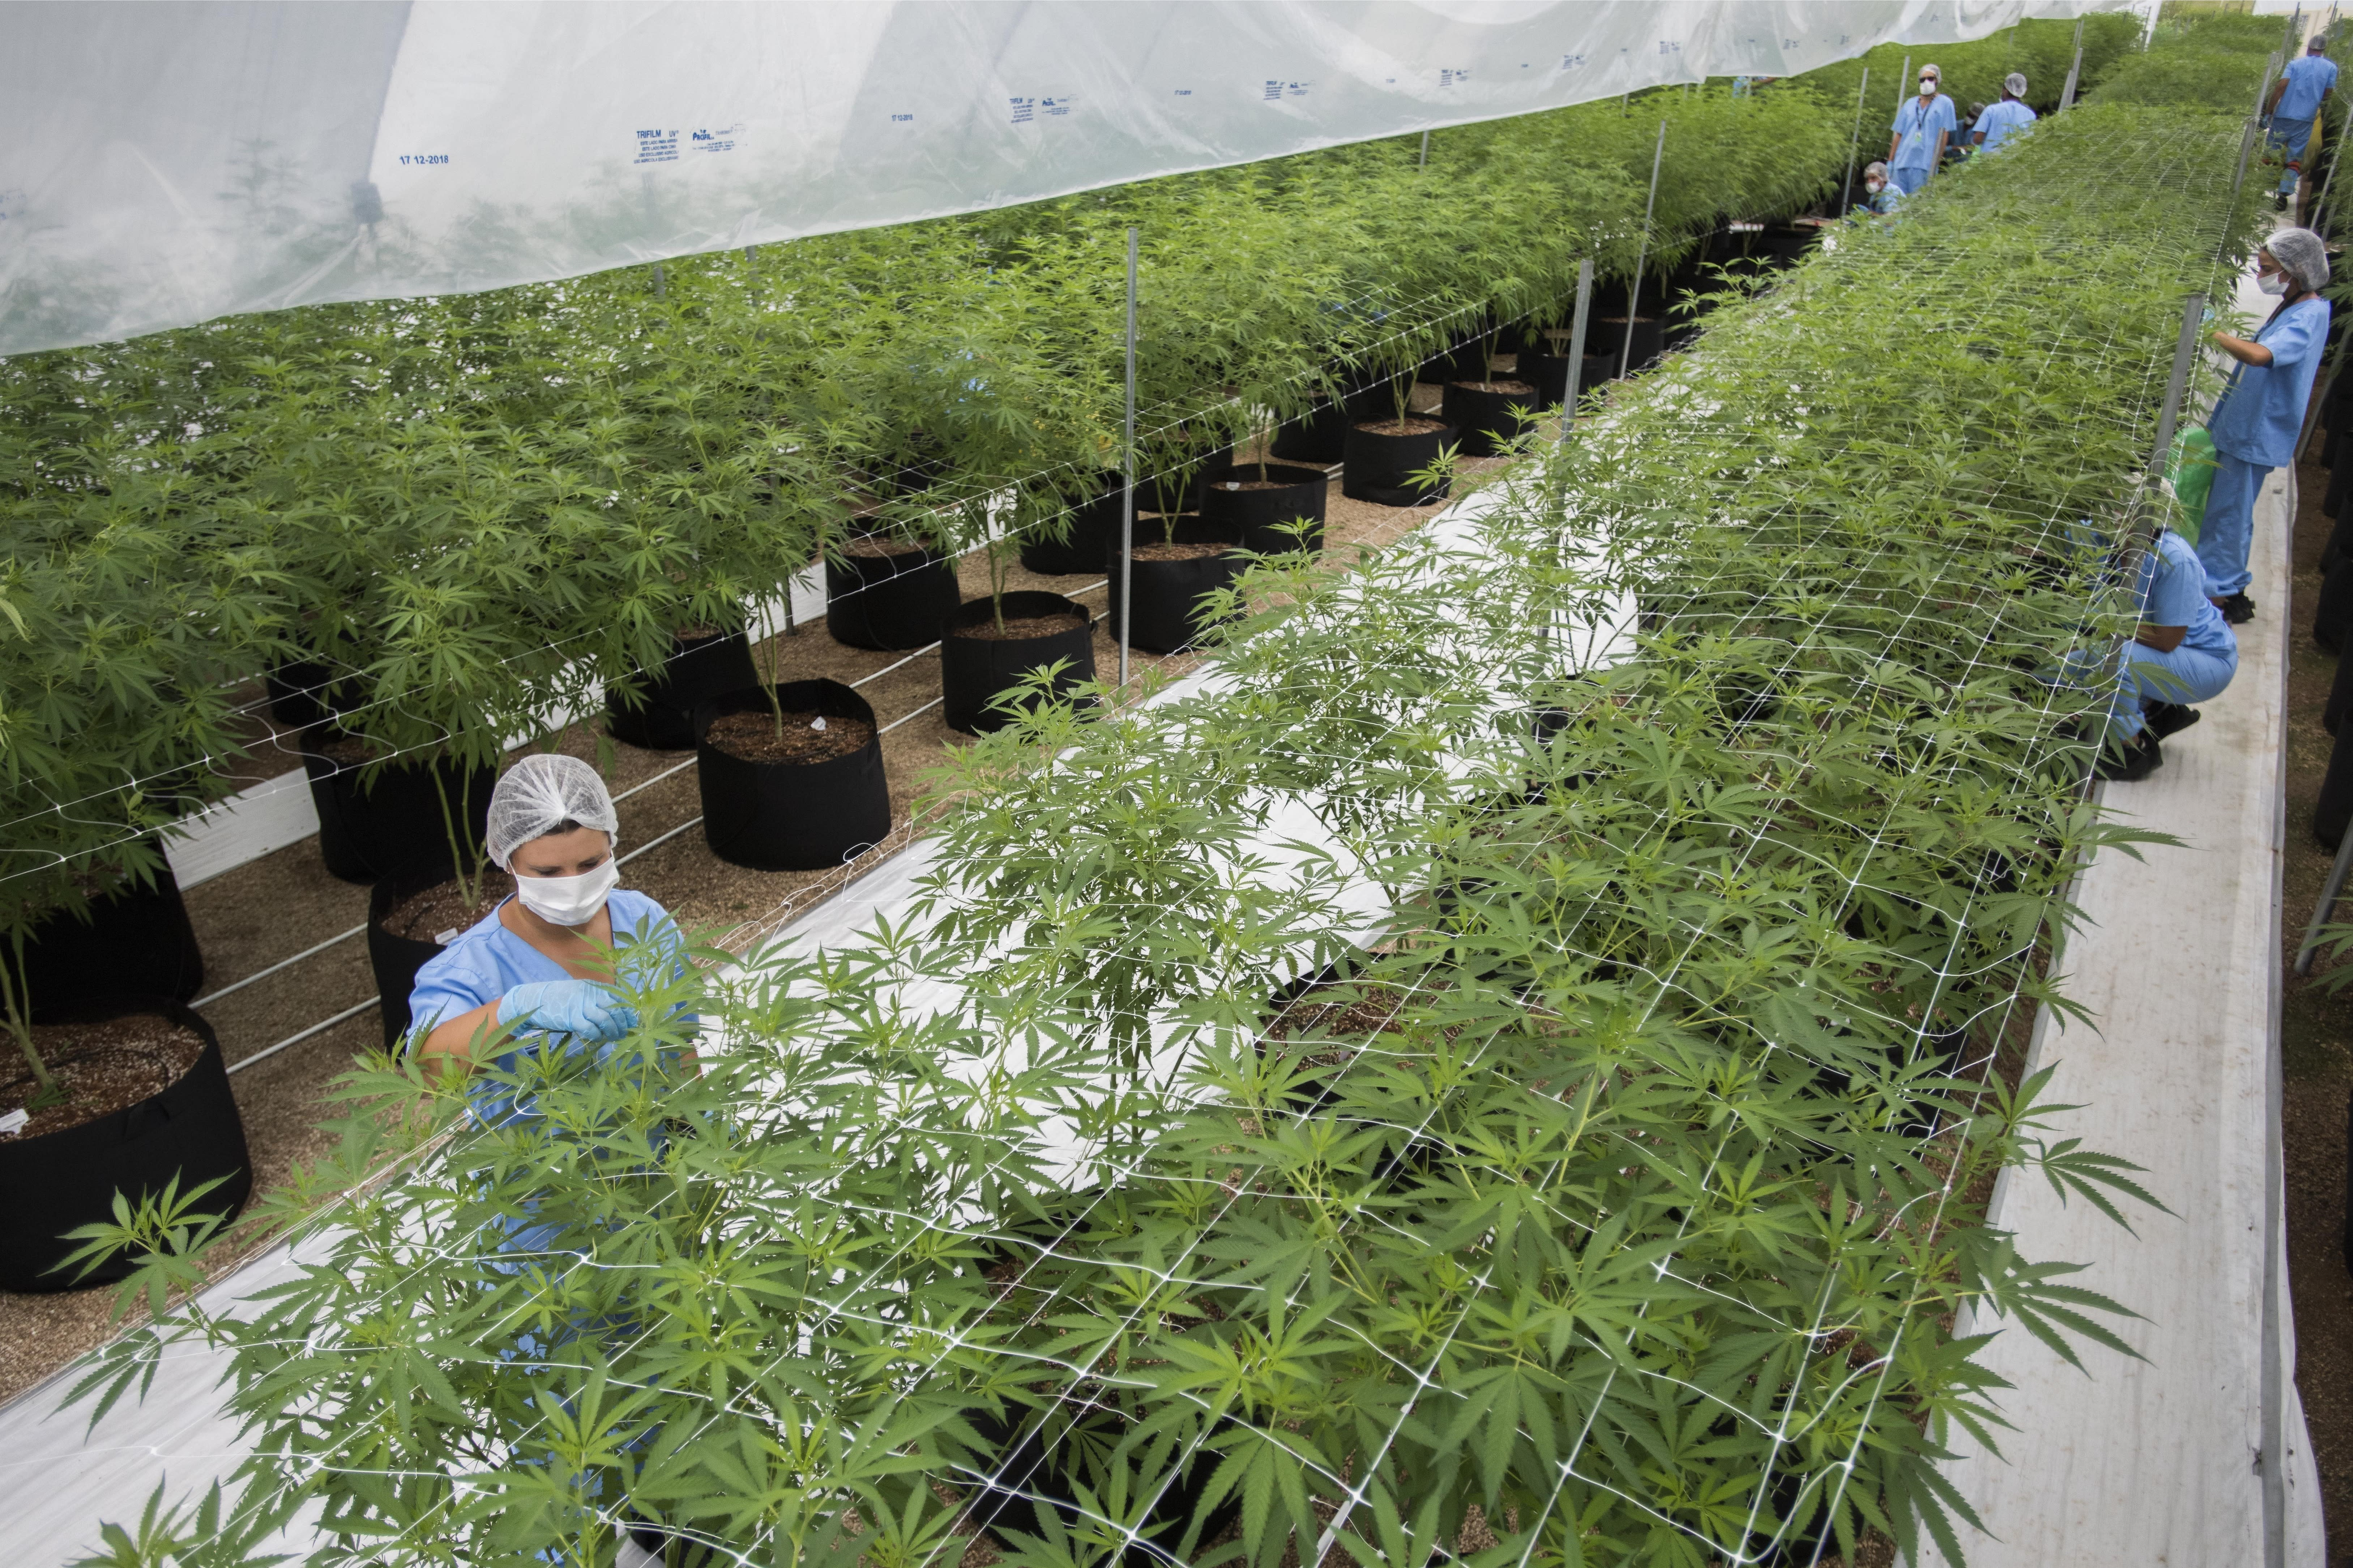 CORRECTS SHIPMENT TO 10 KILOS - In this Jan. 30, 2019 photo, workers trim marijuana plants at Fotmer, in Nueva Helvecia, Uruguay. Uruguayan based company Fotmer confirms the recent shipment of approximately 10 kilos of medicinal marijuana to Australia. This export of the product by the US-Uruguayan joint venture company is part of a medicinal marijuana industry that many hope will become a moneymaker for the South American country. (AP Photo/Matilde Campodonico)